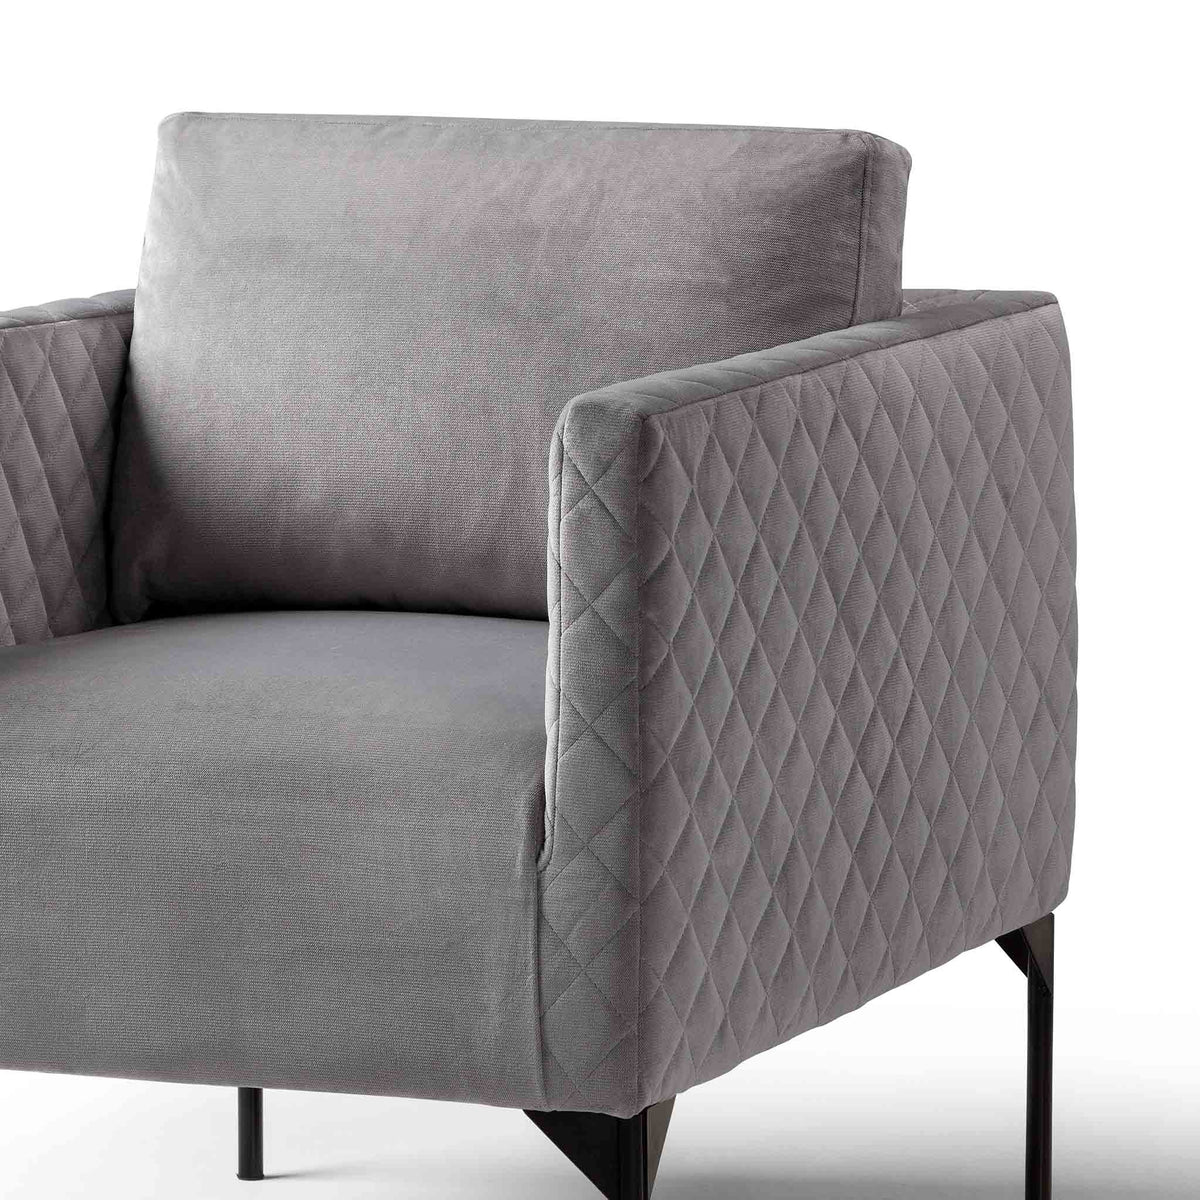 close up of padded seat and back cushions on the Bali Grey Velvet Accent Chair